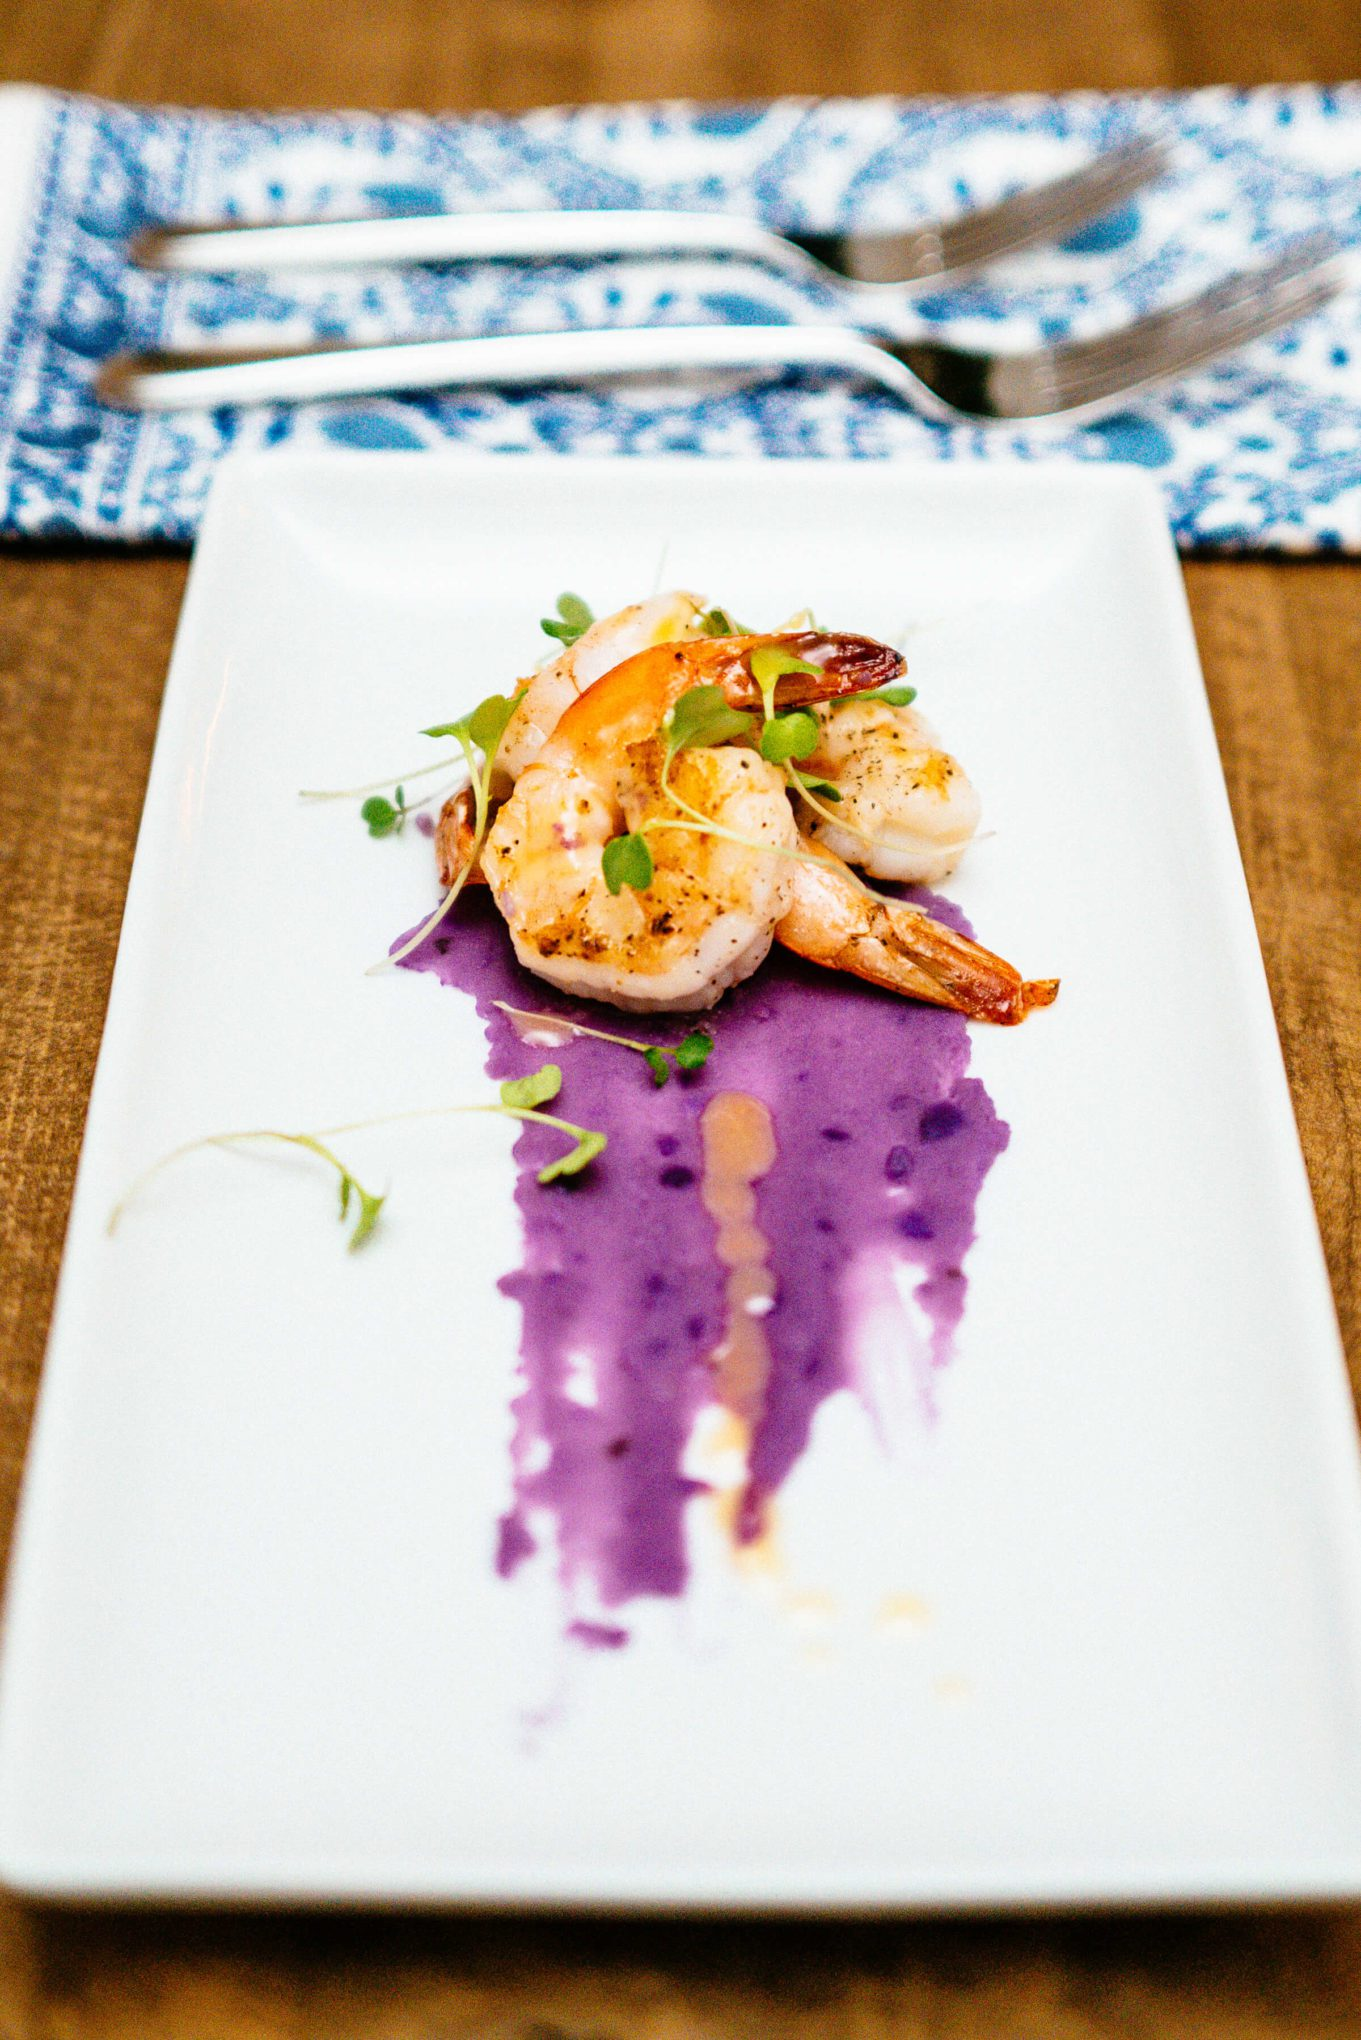 Franciacorta sparkling Italian wine recipe with shrimp and purple potatoes